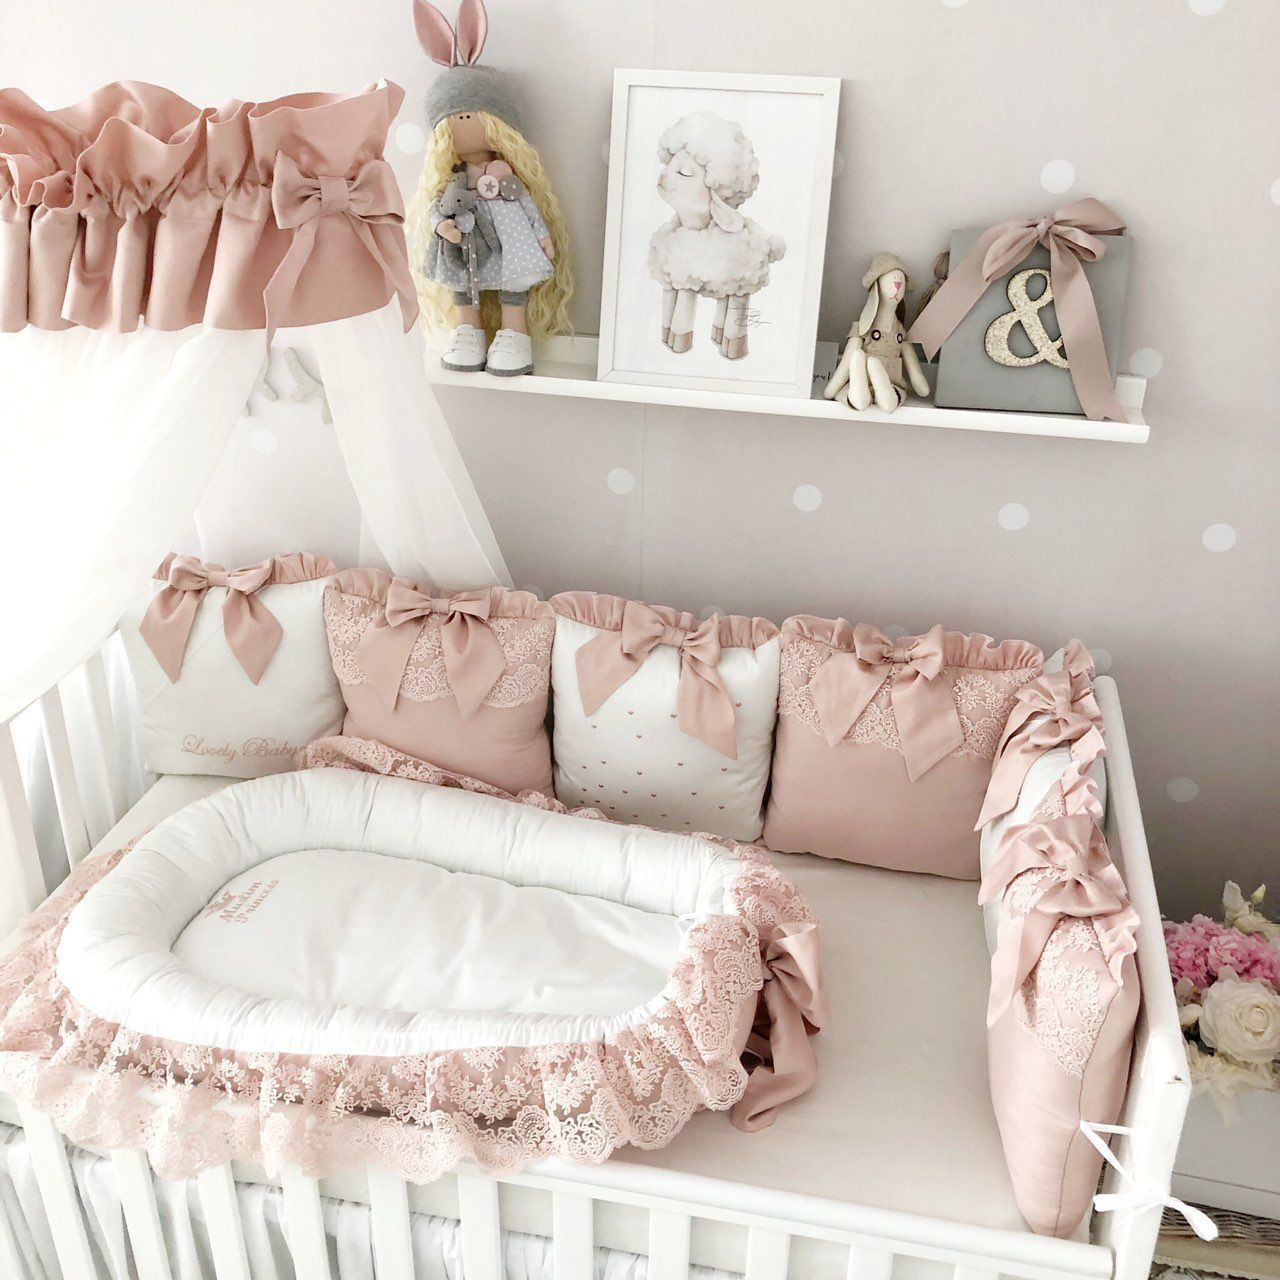 Baby Girl Bedding Crib Set Cot Bedding Set For Girl Personalized Baby Bedding Deluxe Baby Nest Baby Sleeper Bumper Pads Receiving Blanket Luxury Crib Bedding Crib Bedding Girl Baby Girl